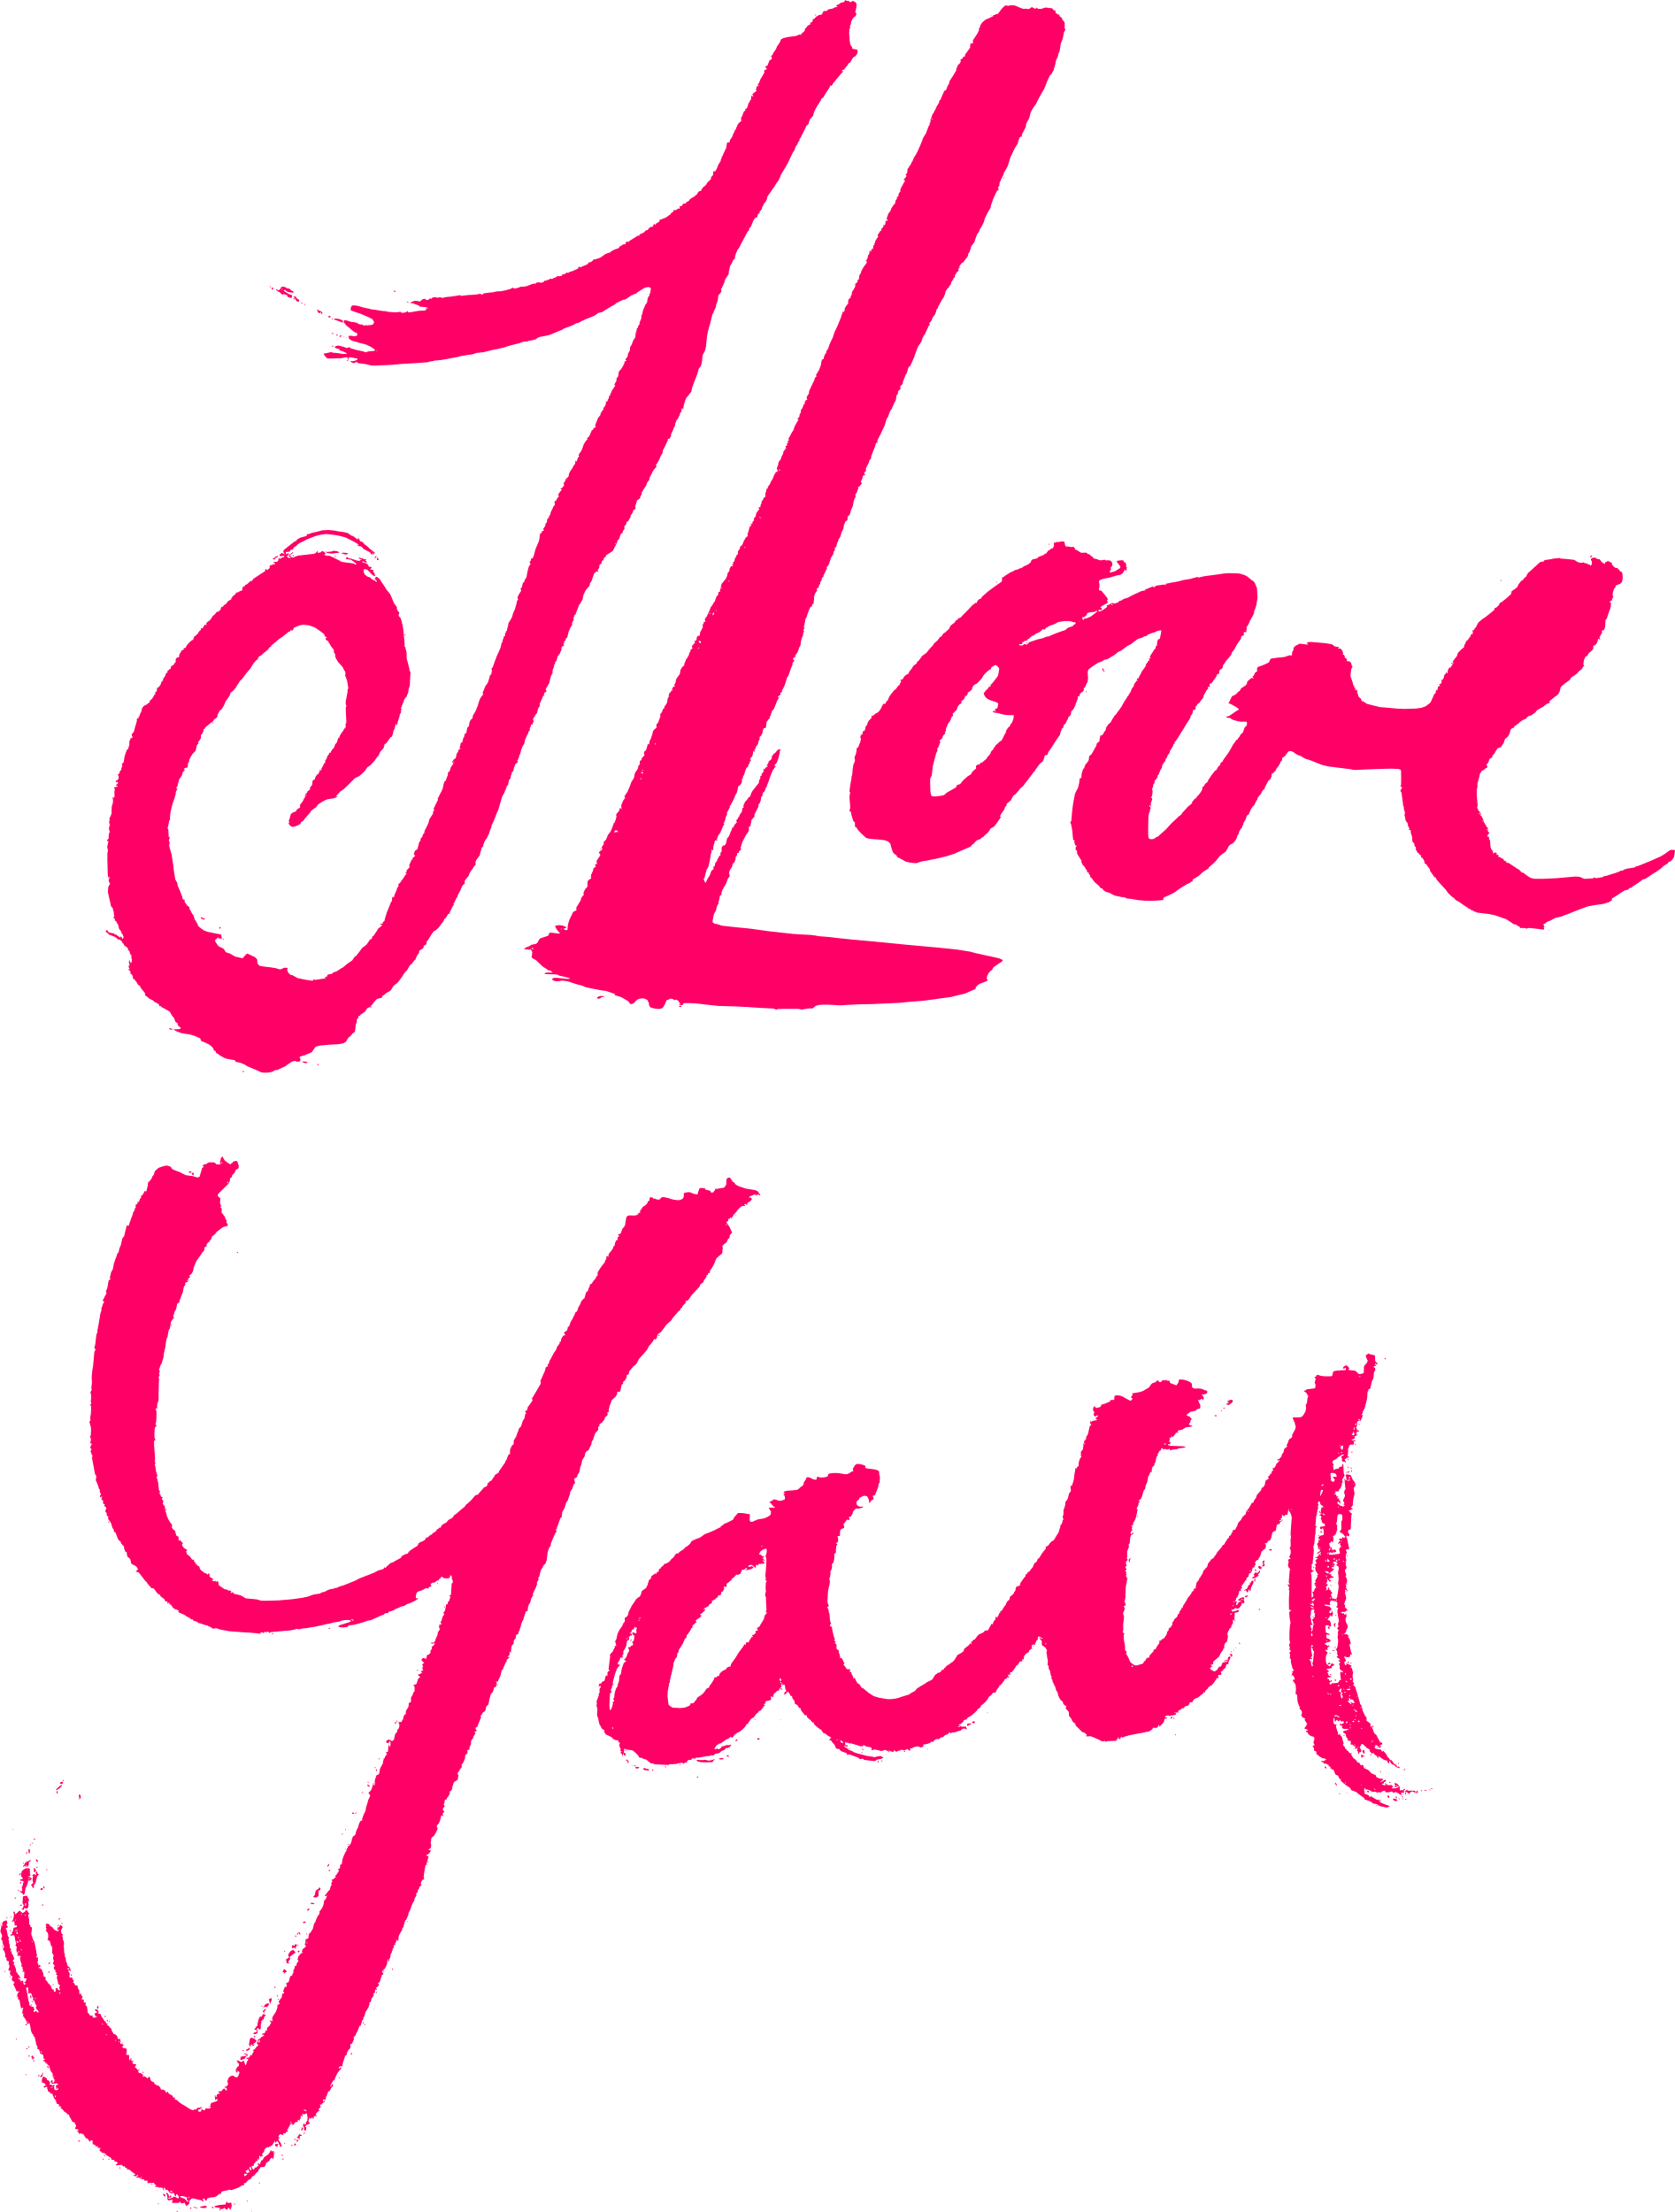 8 i love you texts png transparent onlygfx free download i love you 2g altavistaventures Choice Image